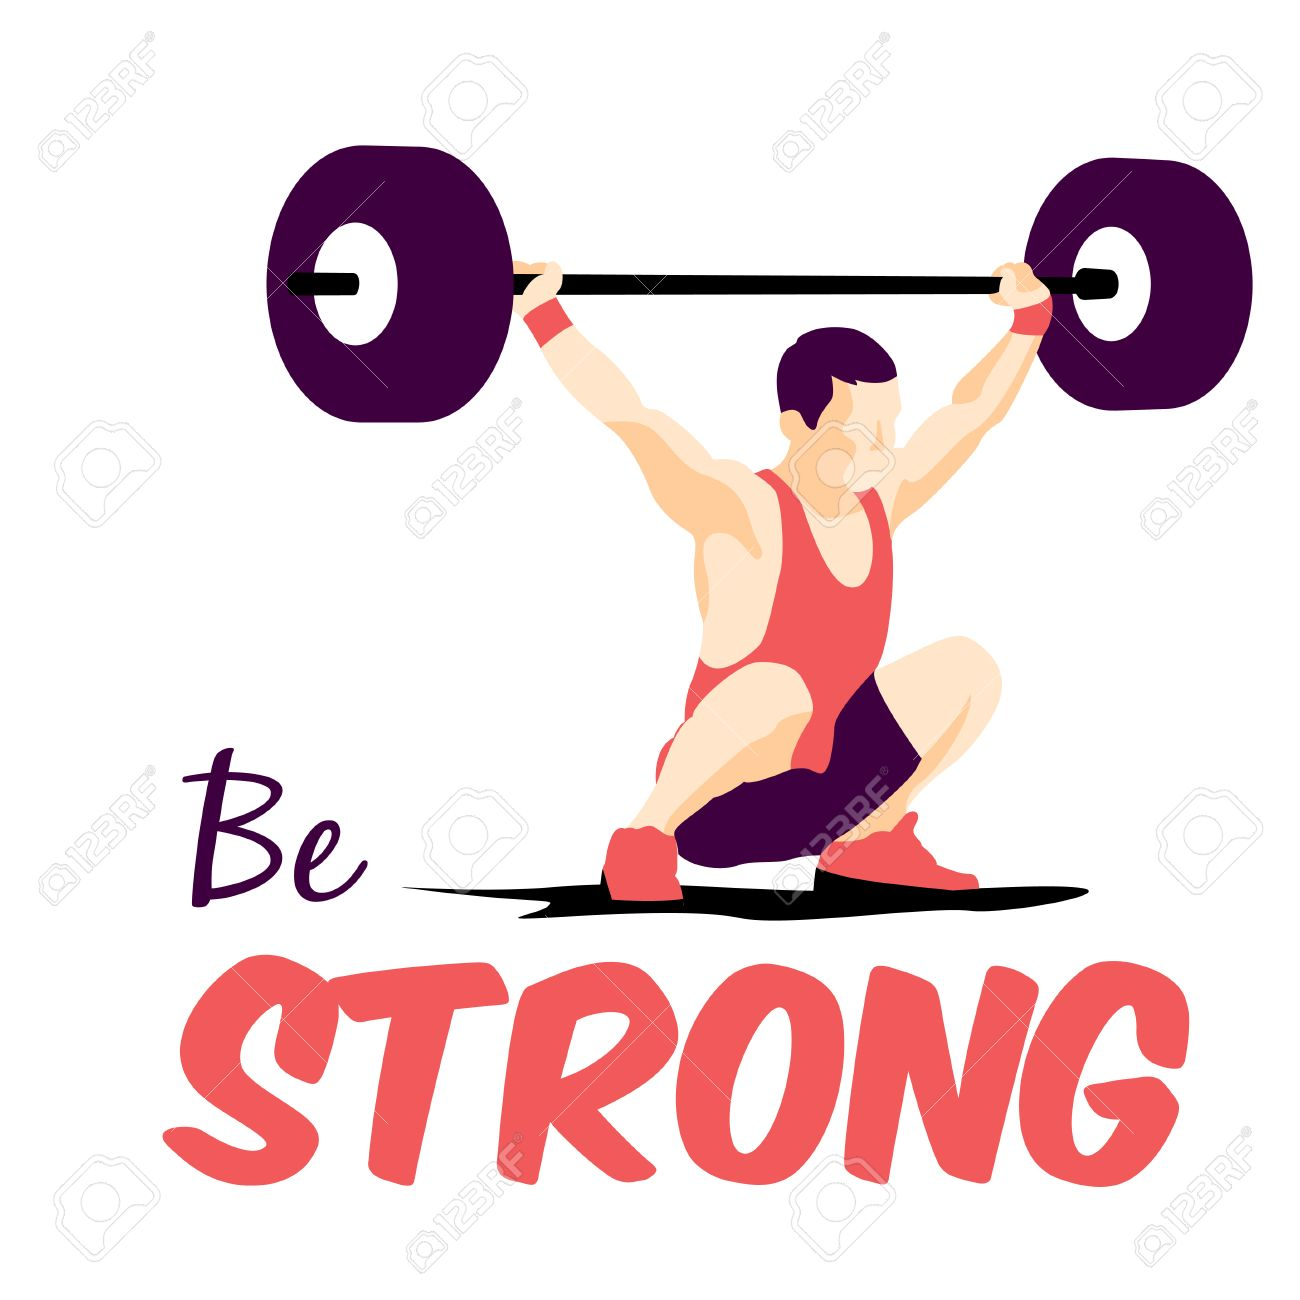 1300x1300 Weight Lifting Athlete And Motivational Slogan. Be Strong. Snatch